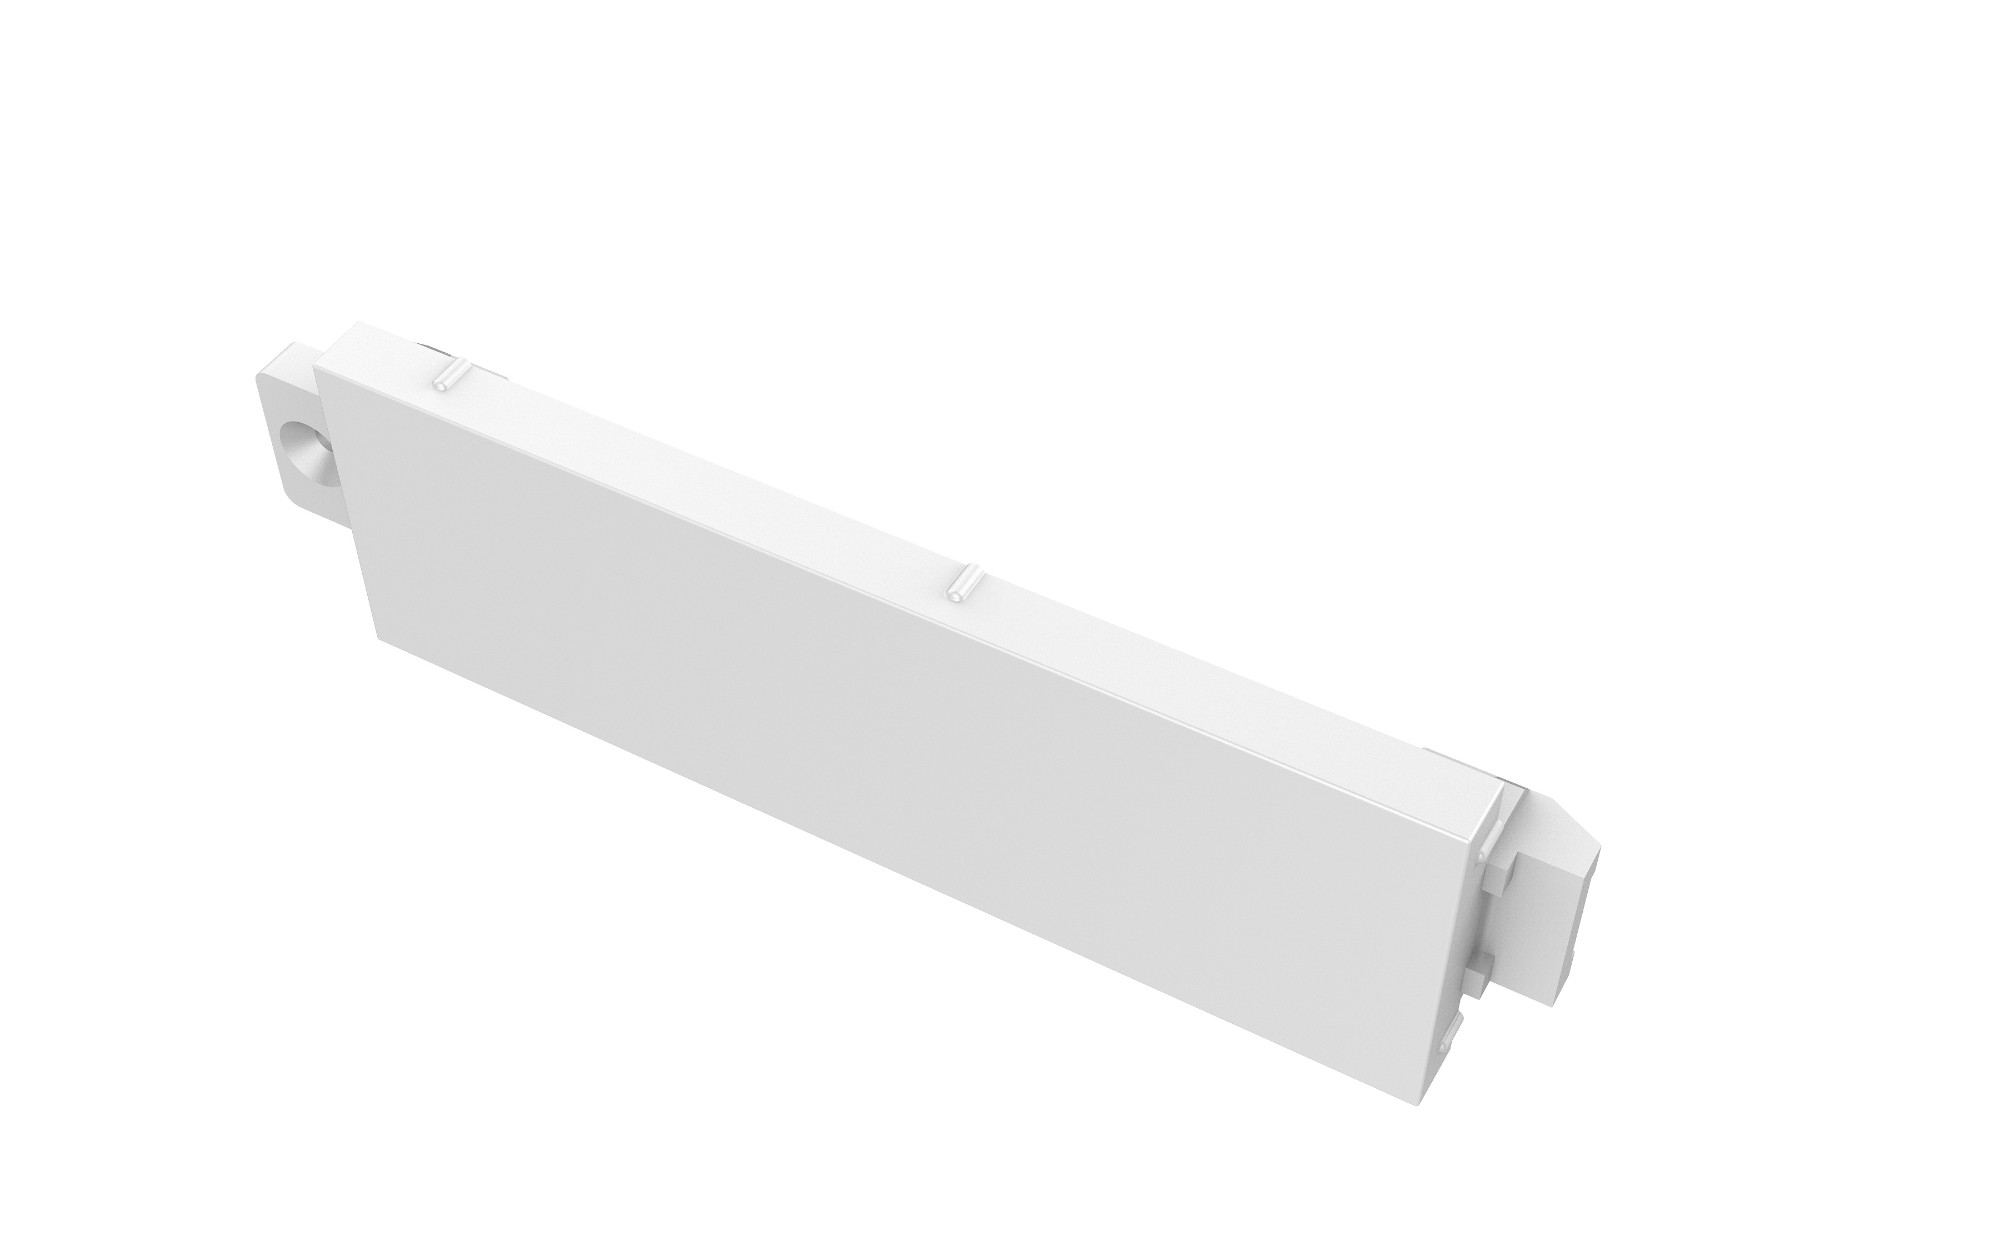 Vision TC3 BLANK placa de pared y cubierta de interruptor Blanco